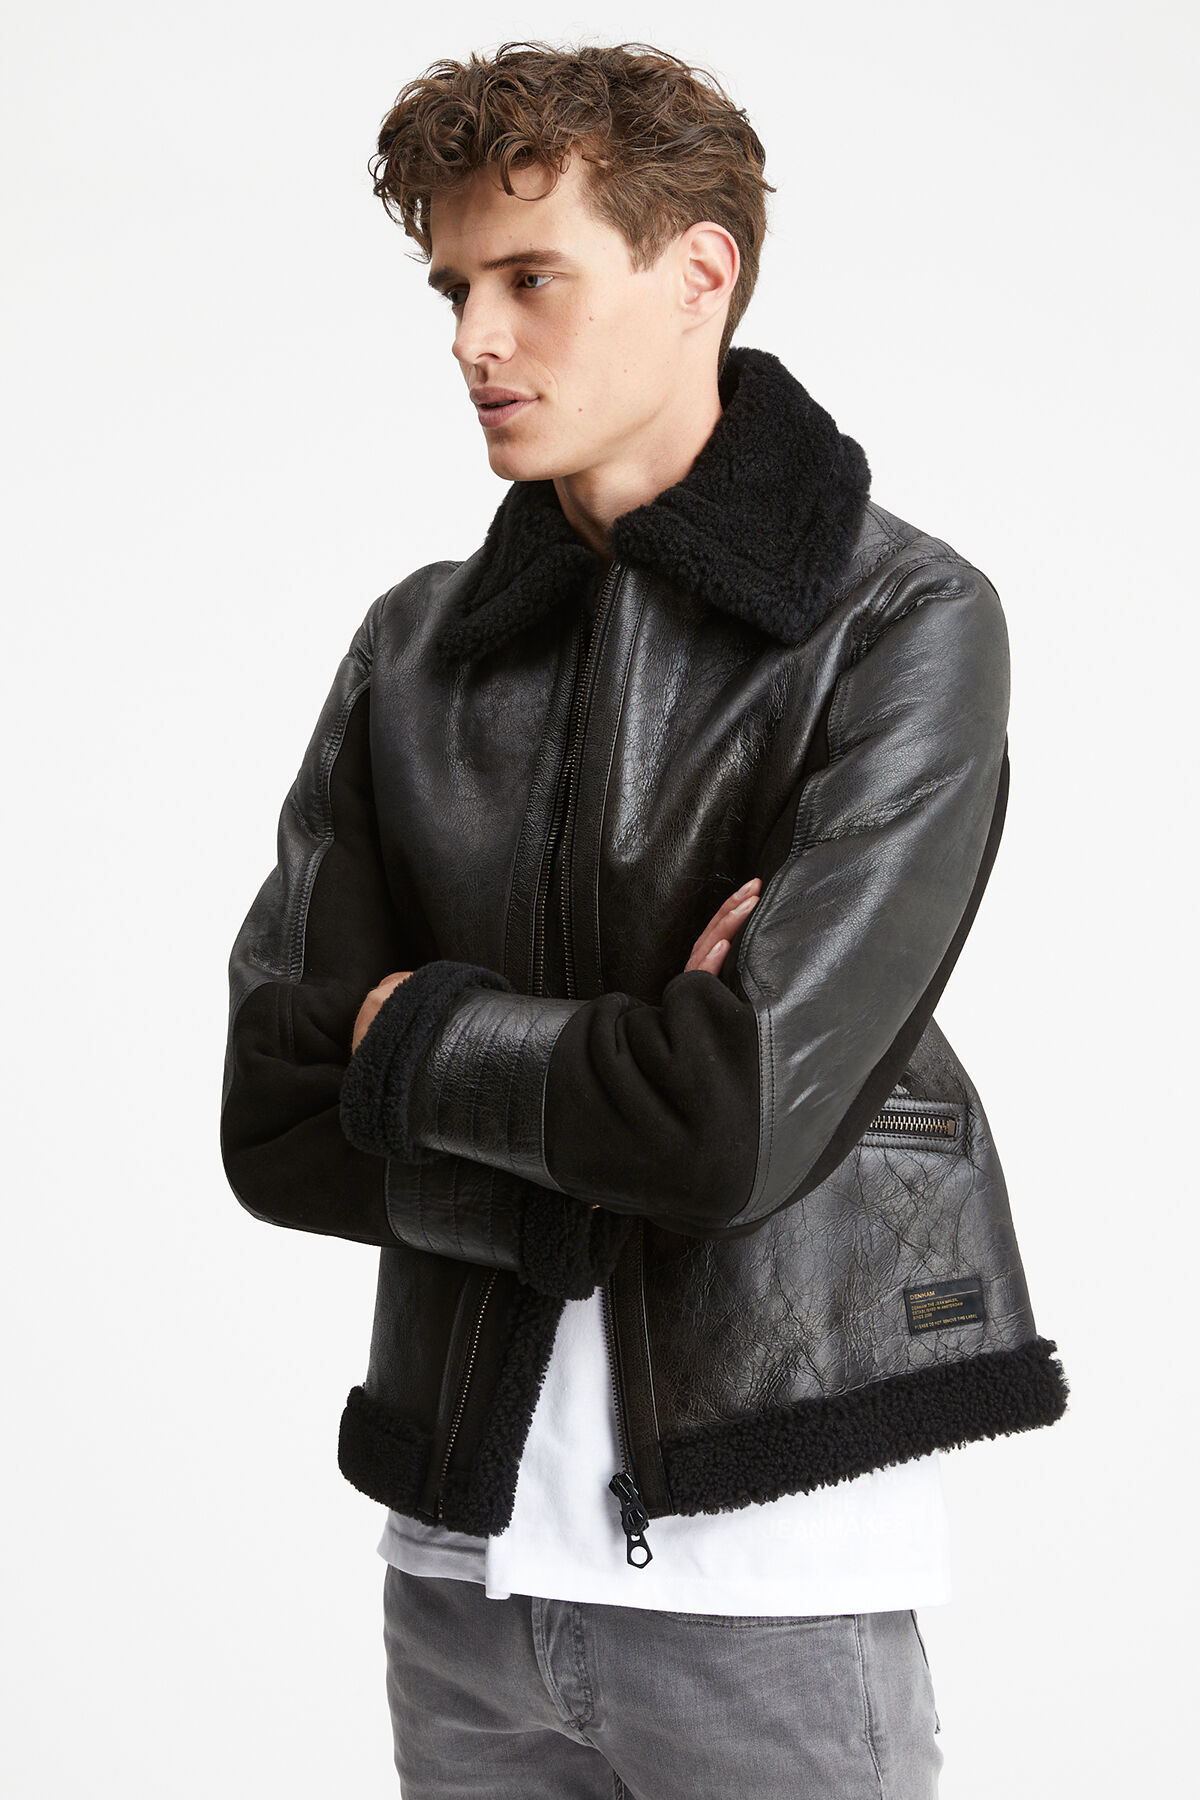 ALLOWAY LEATHER JACKET SHEARLING - Slim Fit